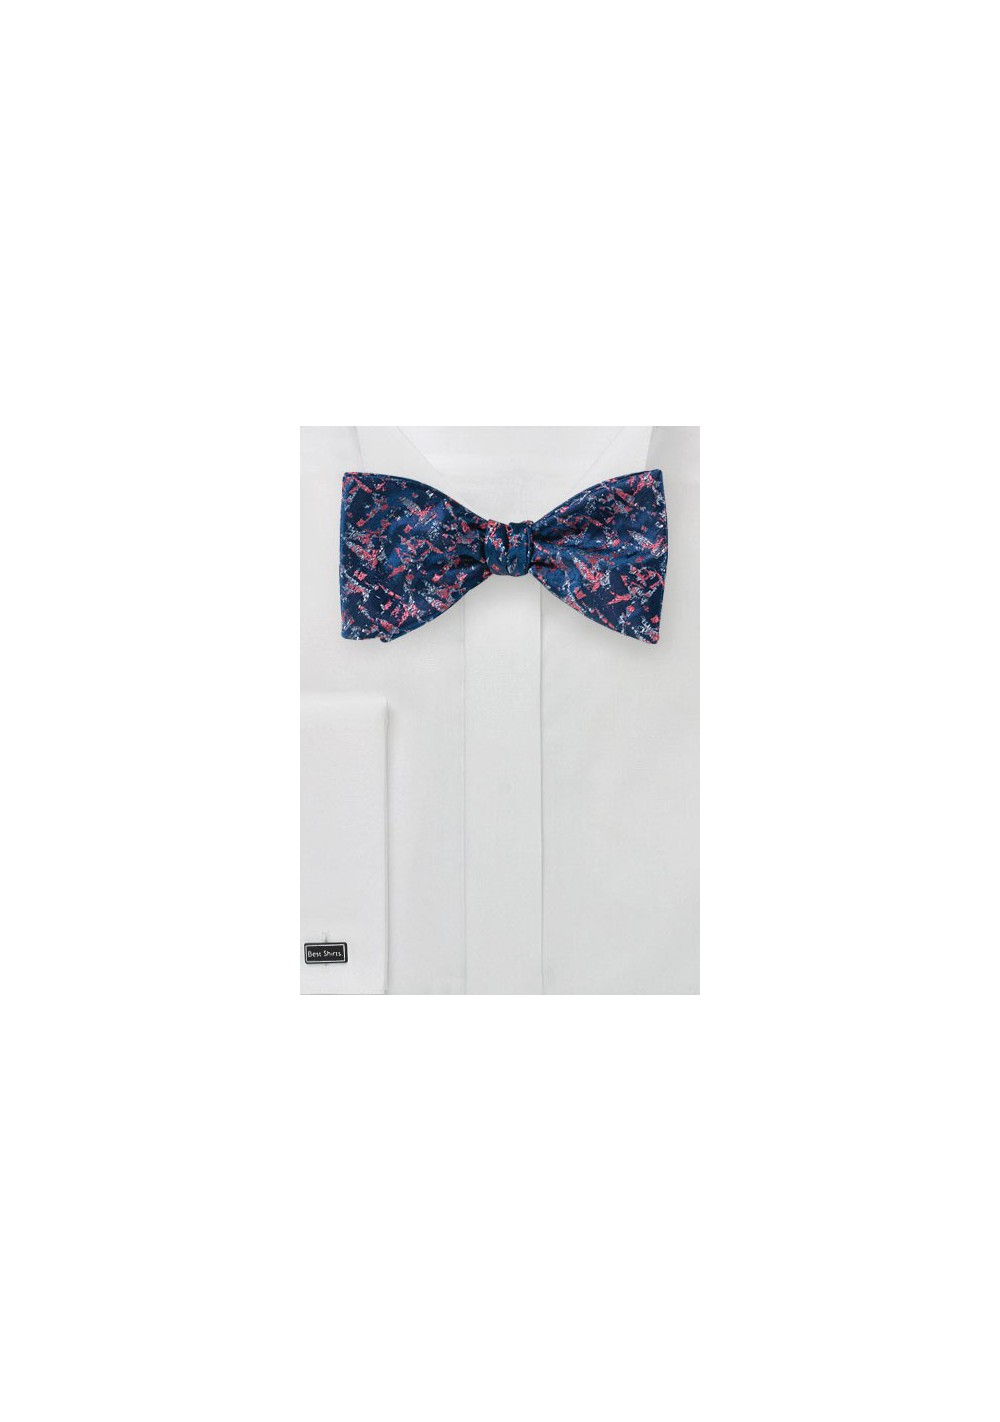 Abstract Art Bow Tie in Navy and Coral